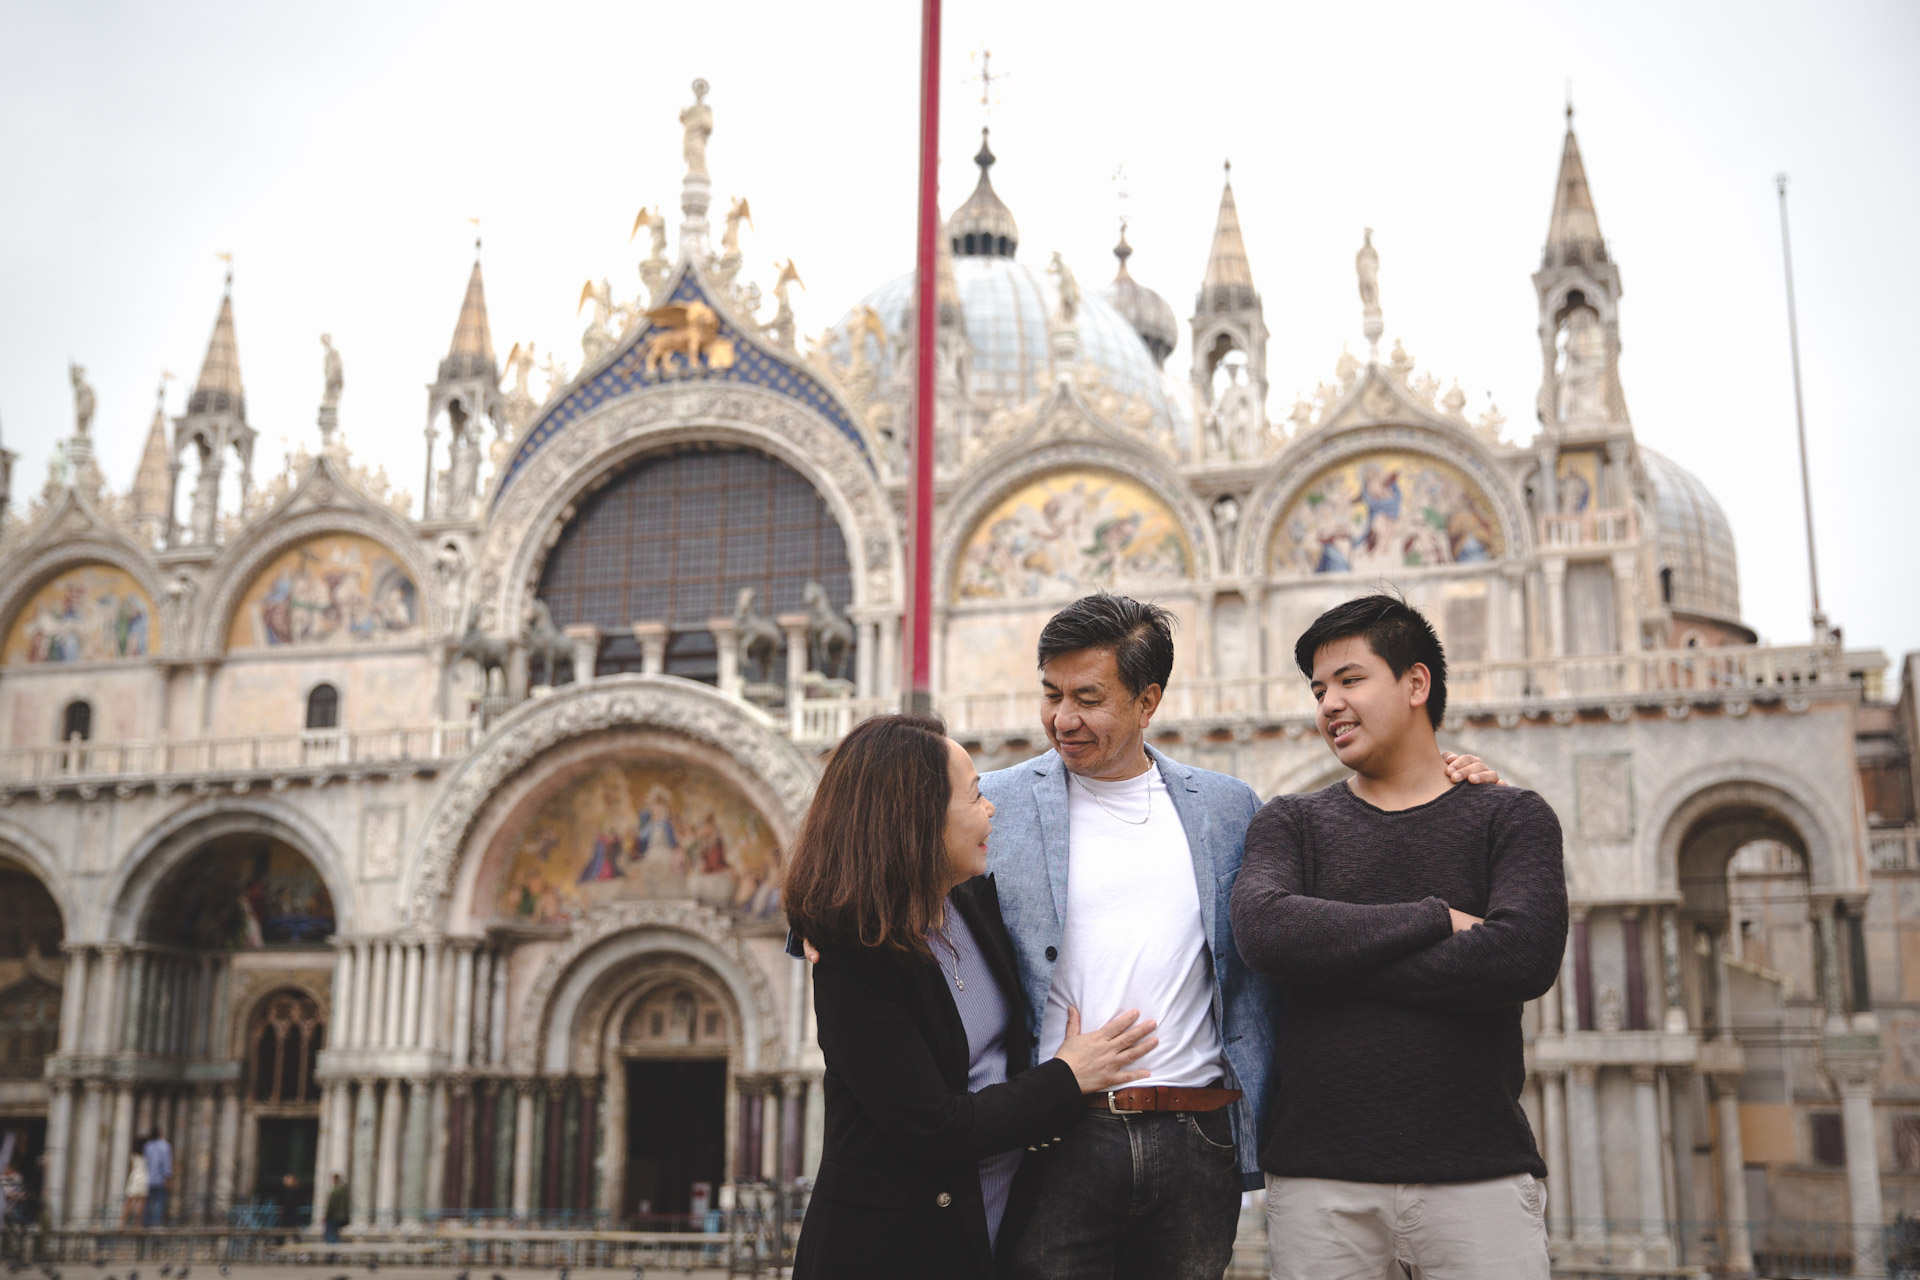 Jo Anne-family-portrait-photo-shooting-sunrise-Basilica-di-San-Marco-Venezia-Venice